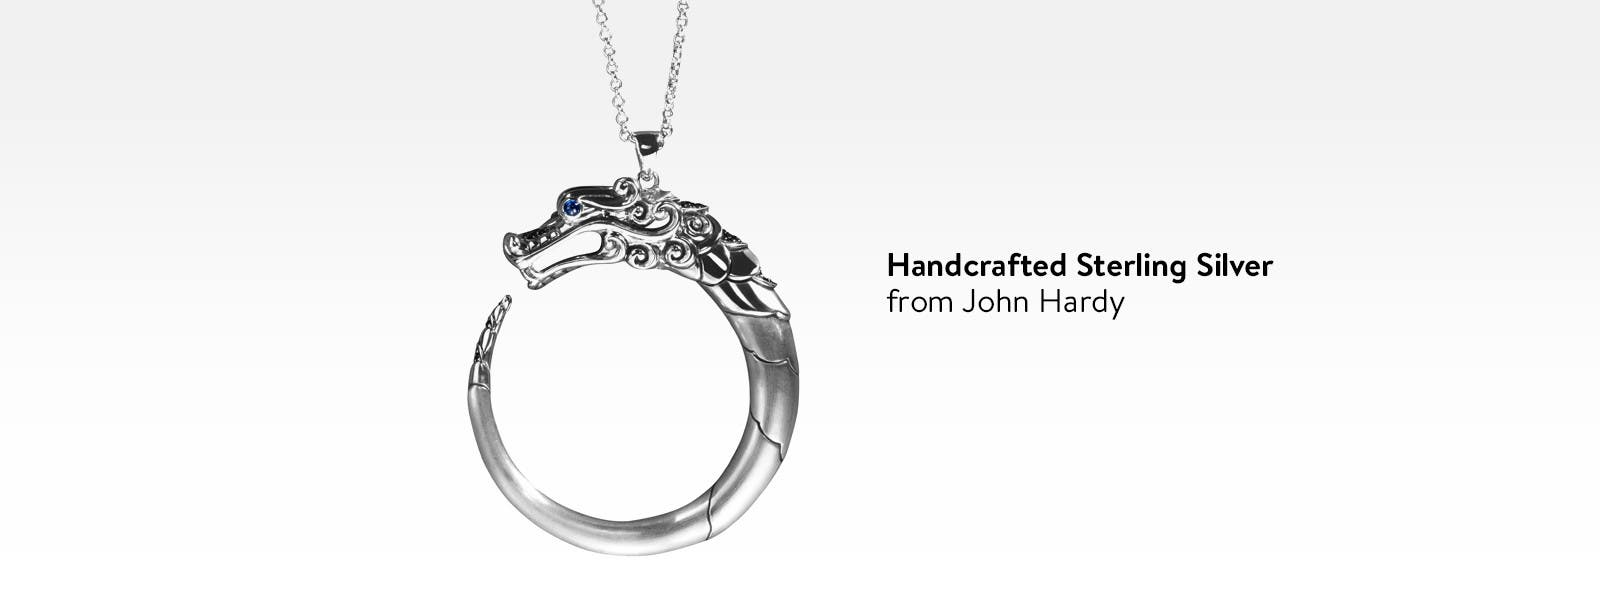 Handcrafted sterling silver jewelry from John Hardy.